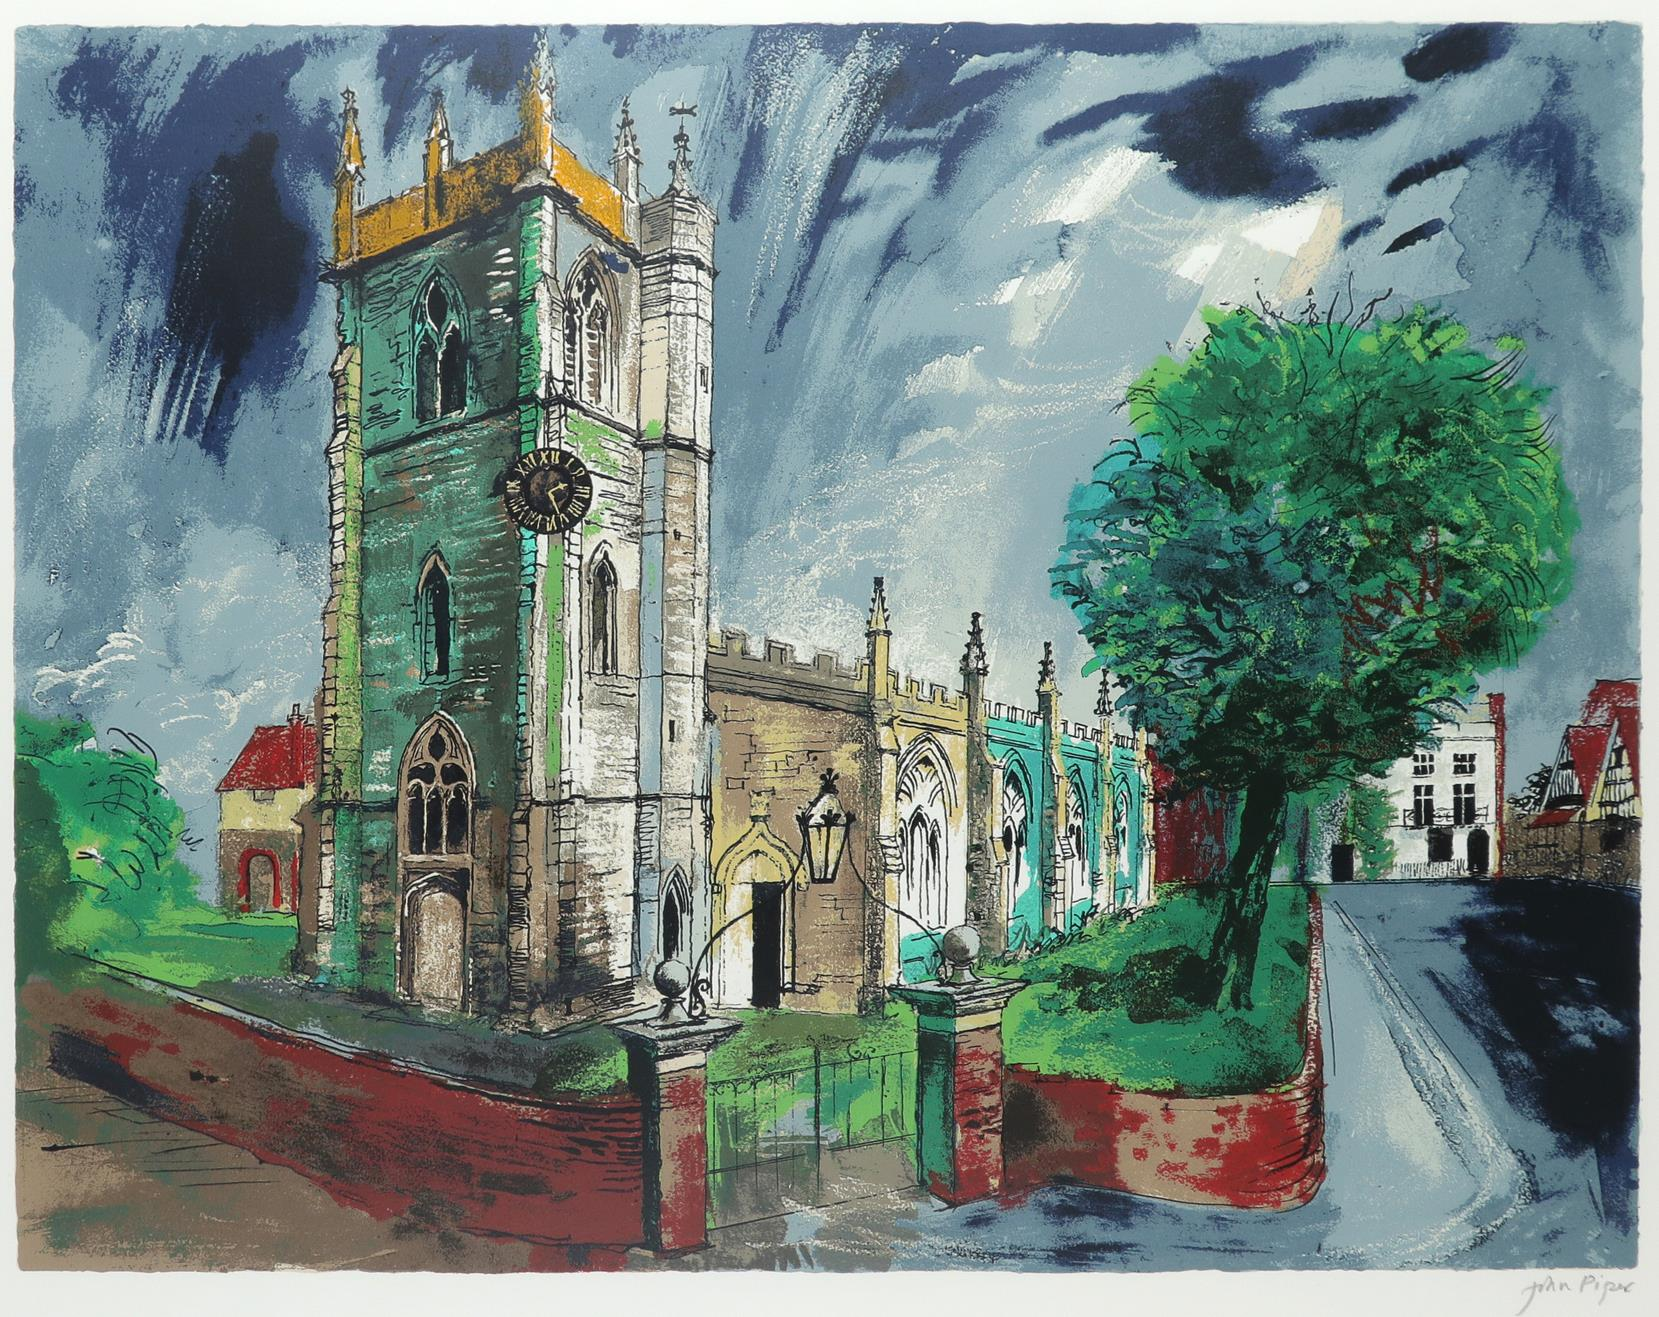 ‡John Piper CH (1903-1992) St Nicholas, Alcester (Levinson 383) Signed in pencil John Piper (in